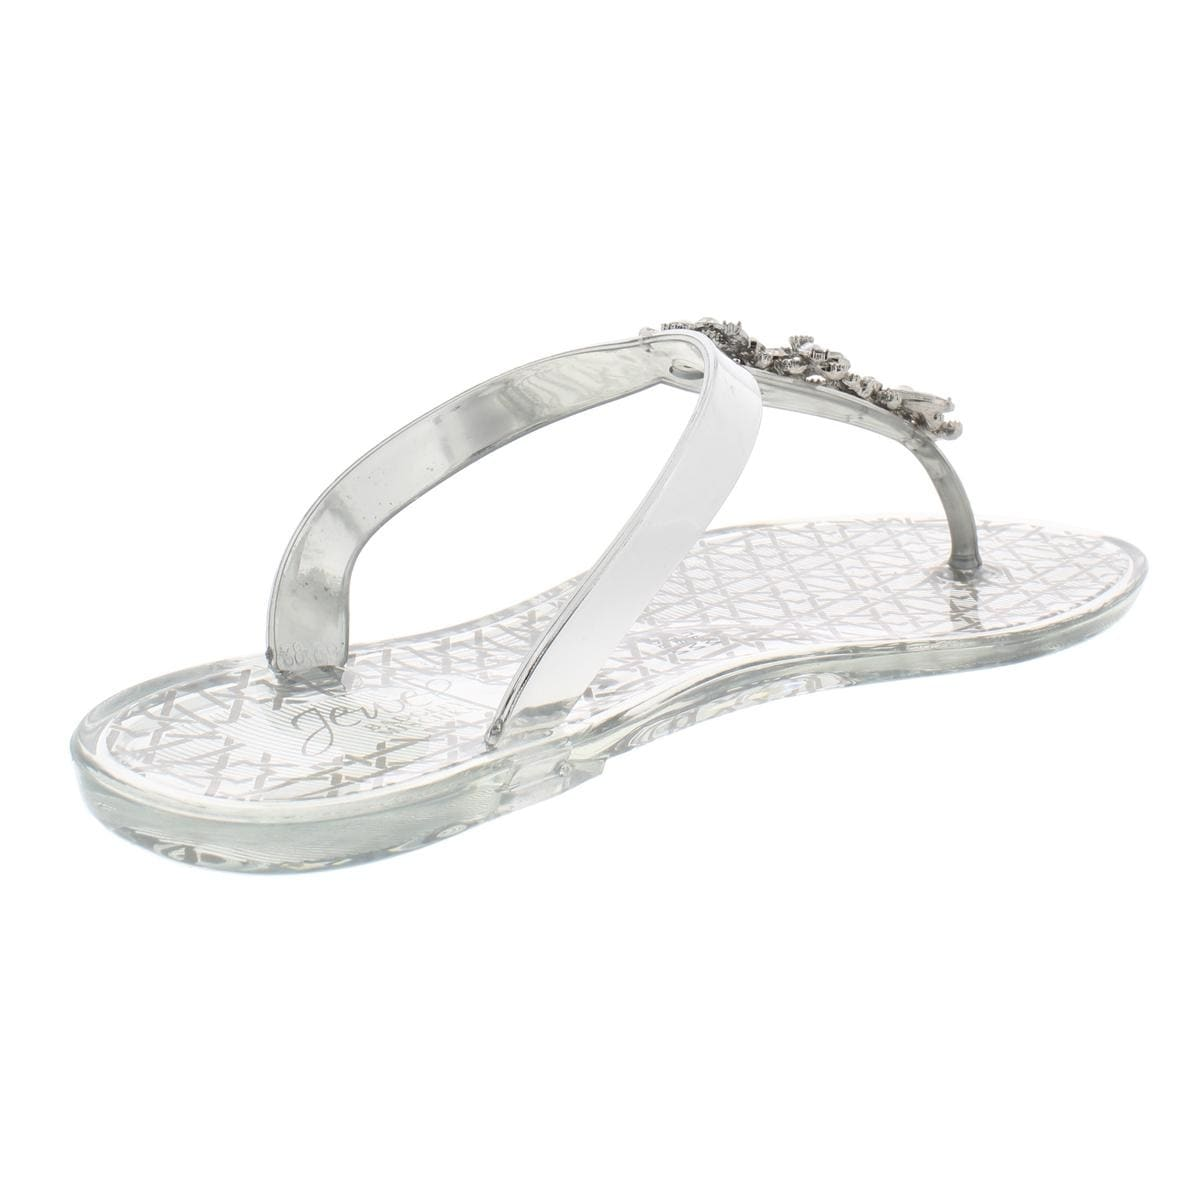 873c1e820 Shop Jewel Badgley Mischka Womens Gracia Thong Sandals Jelly Flats - 7  Medium (B